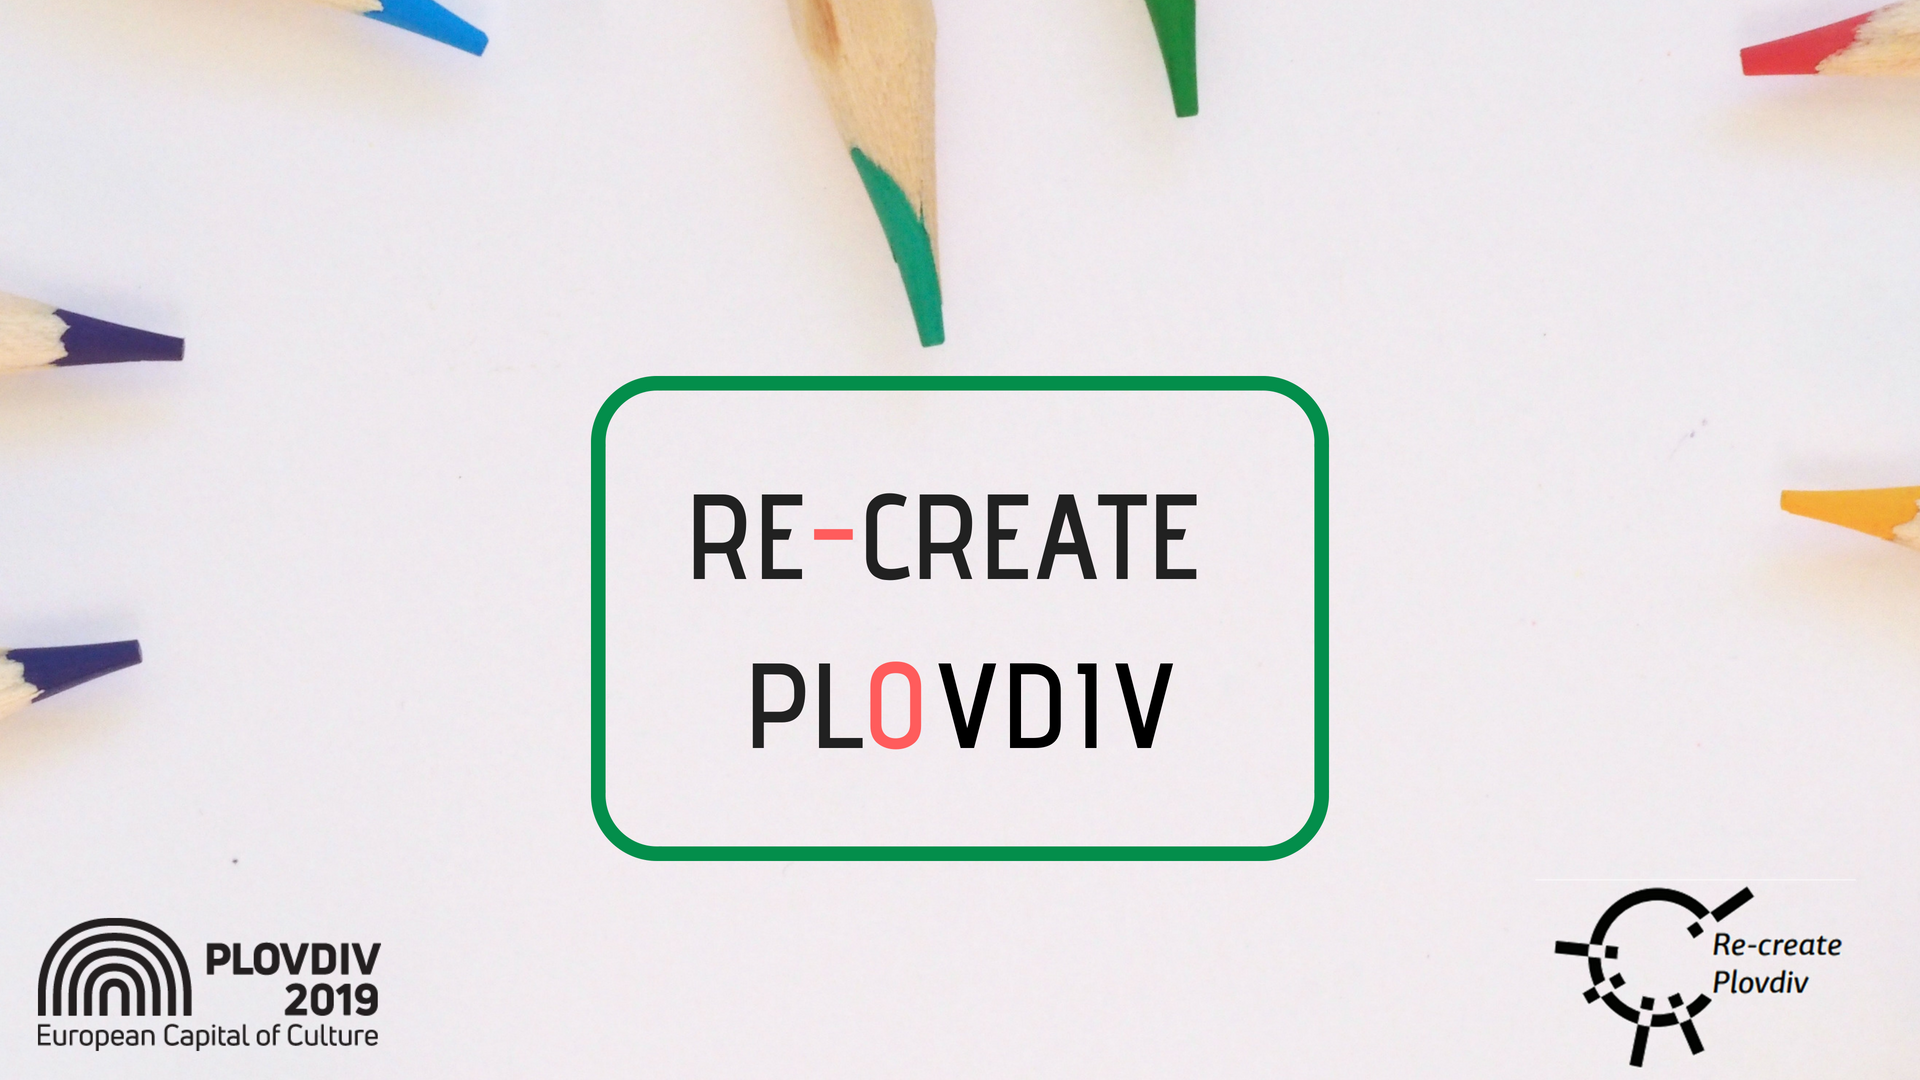 re create plovdiv opening event 19 09 2018 plovdiv 2019